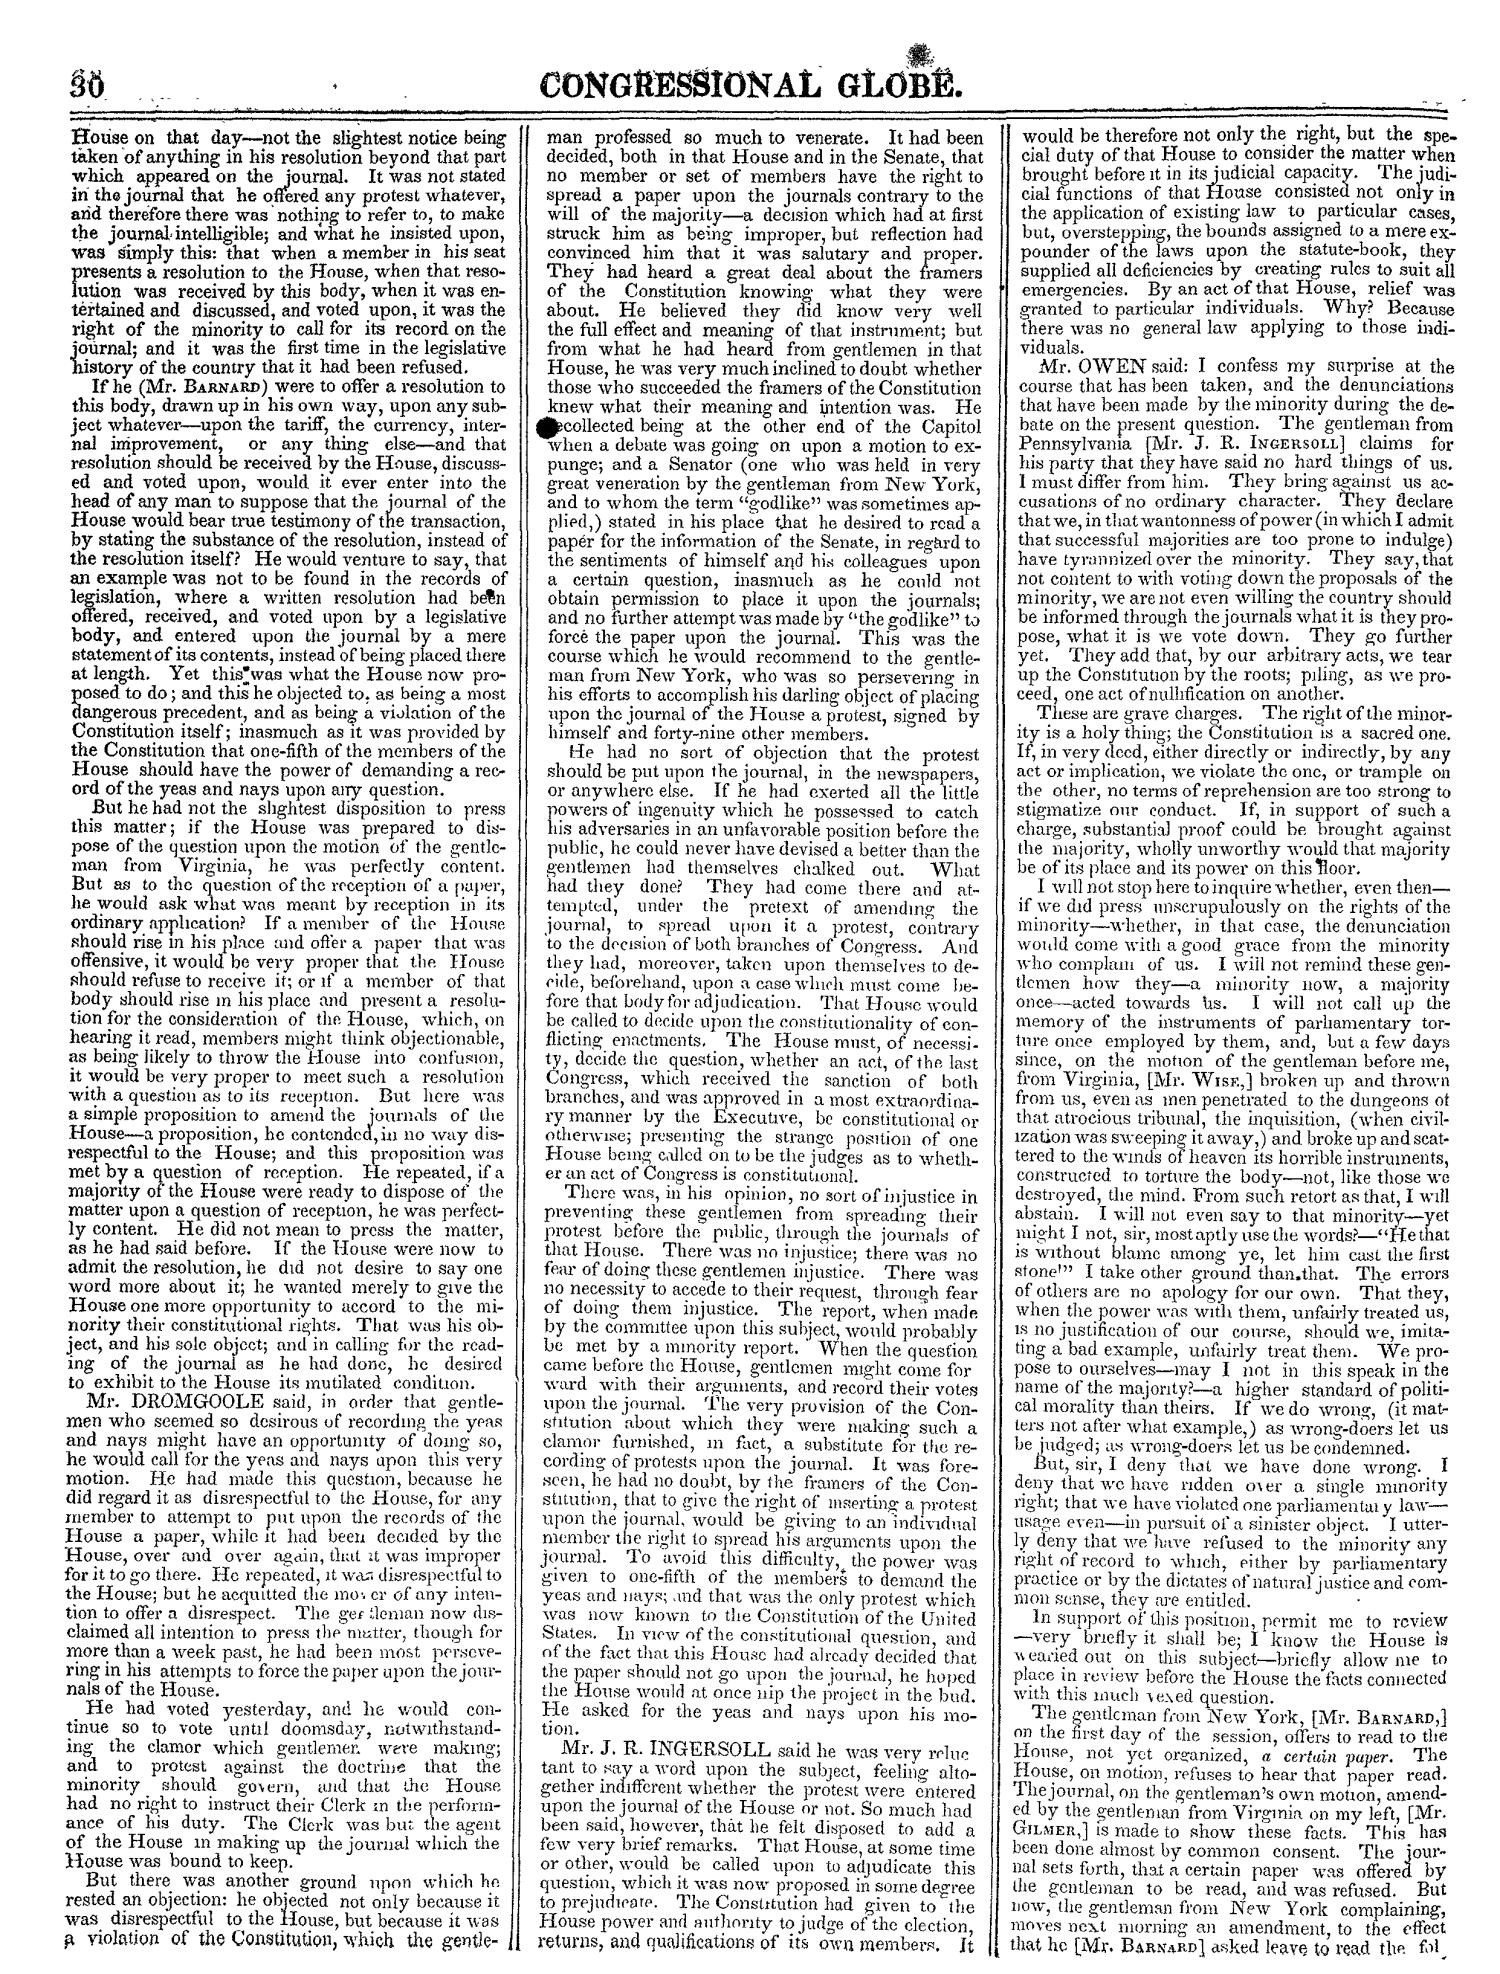 The Congressional Globe, Volume 13, Part 1: Twenty-Eighth Congress, First Session                                                                                                      30